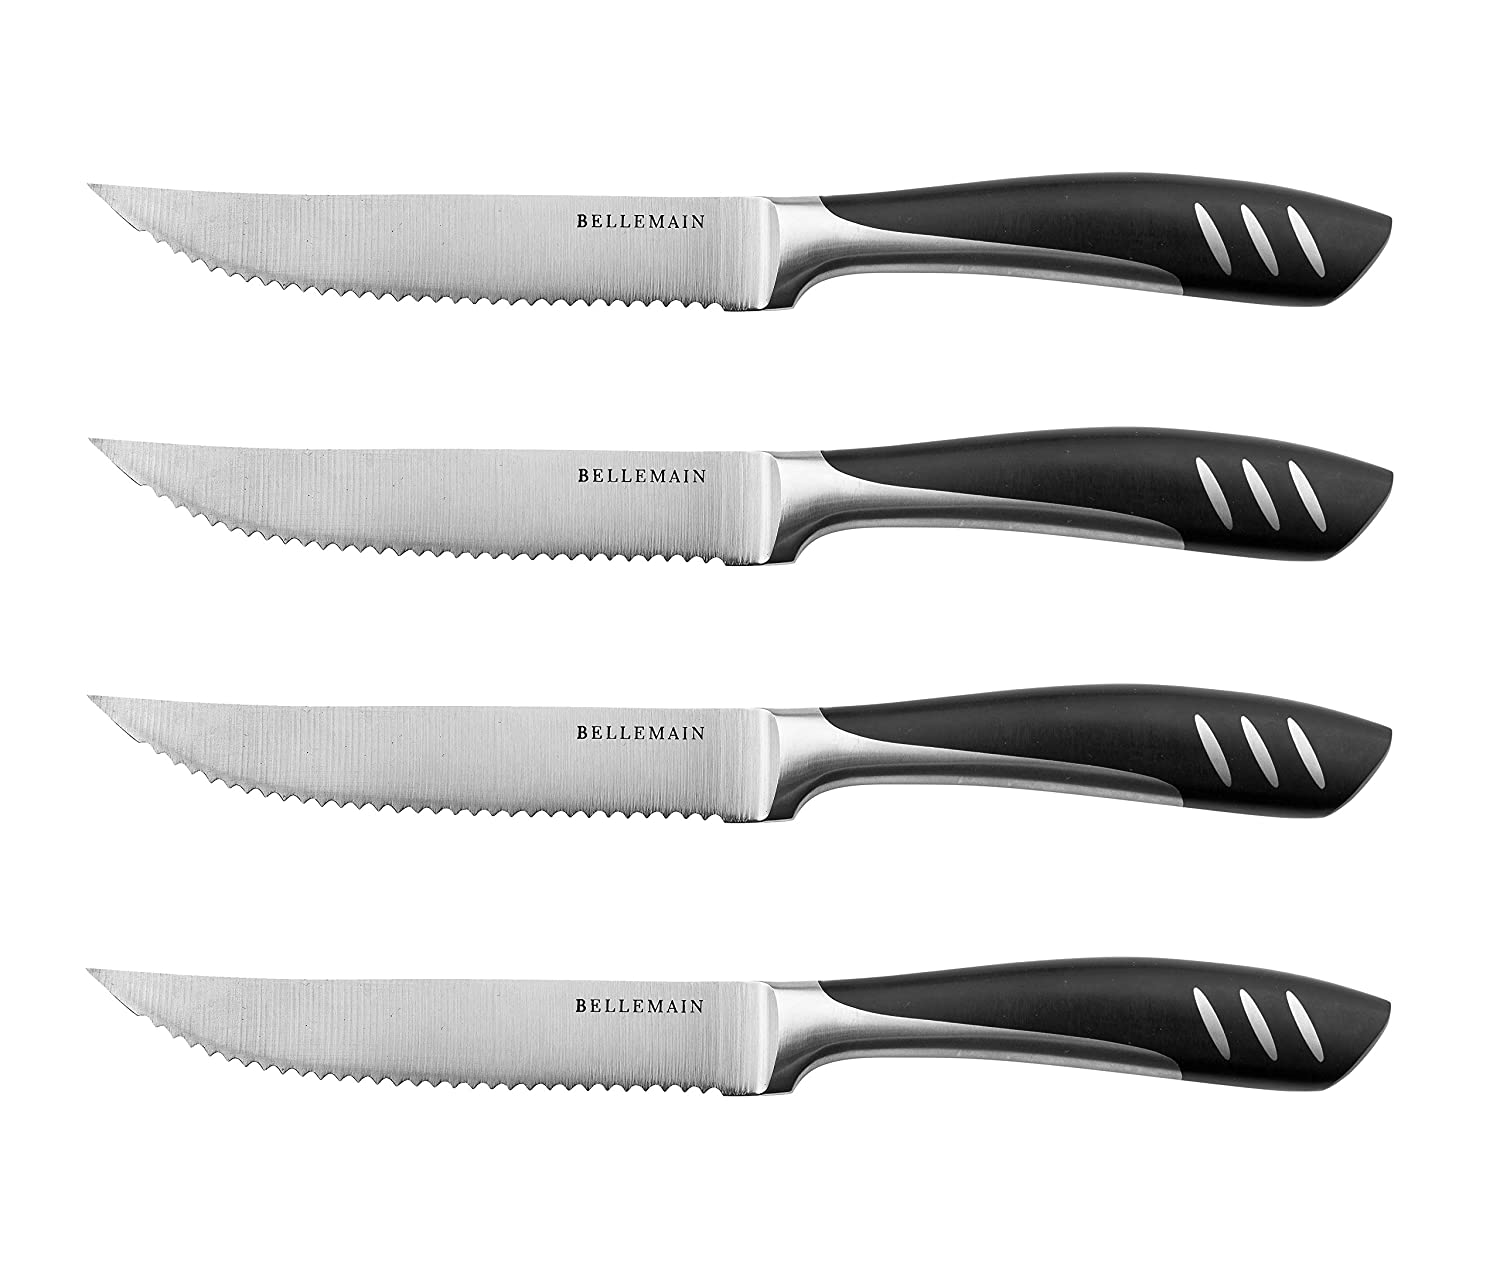 Bellemain Premium Steak Knife Set of 4 Stainless Steel Review